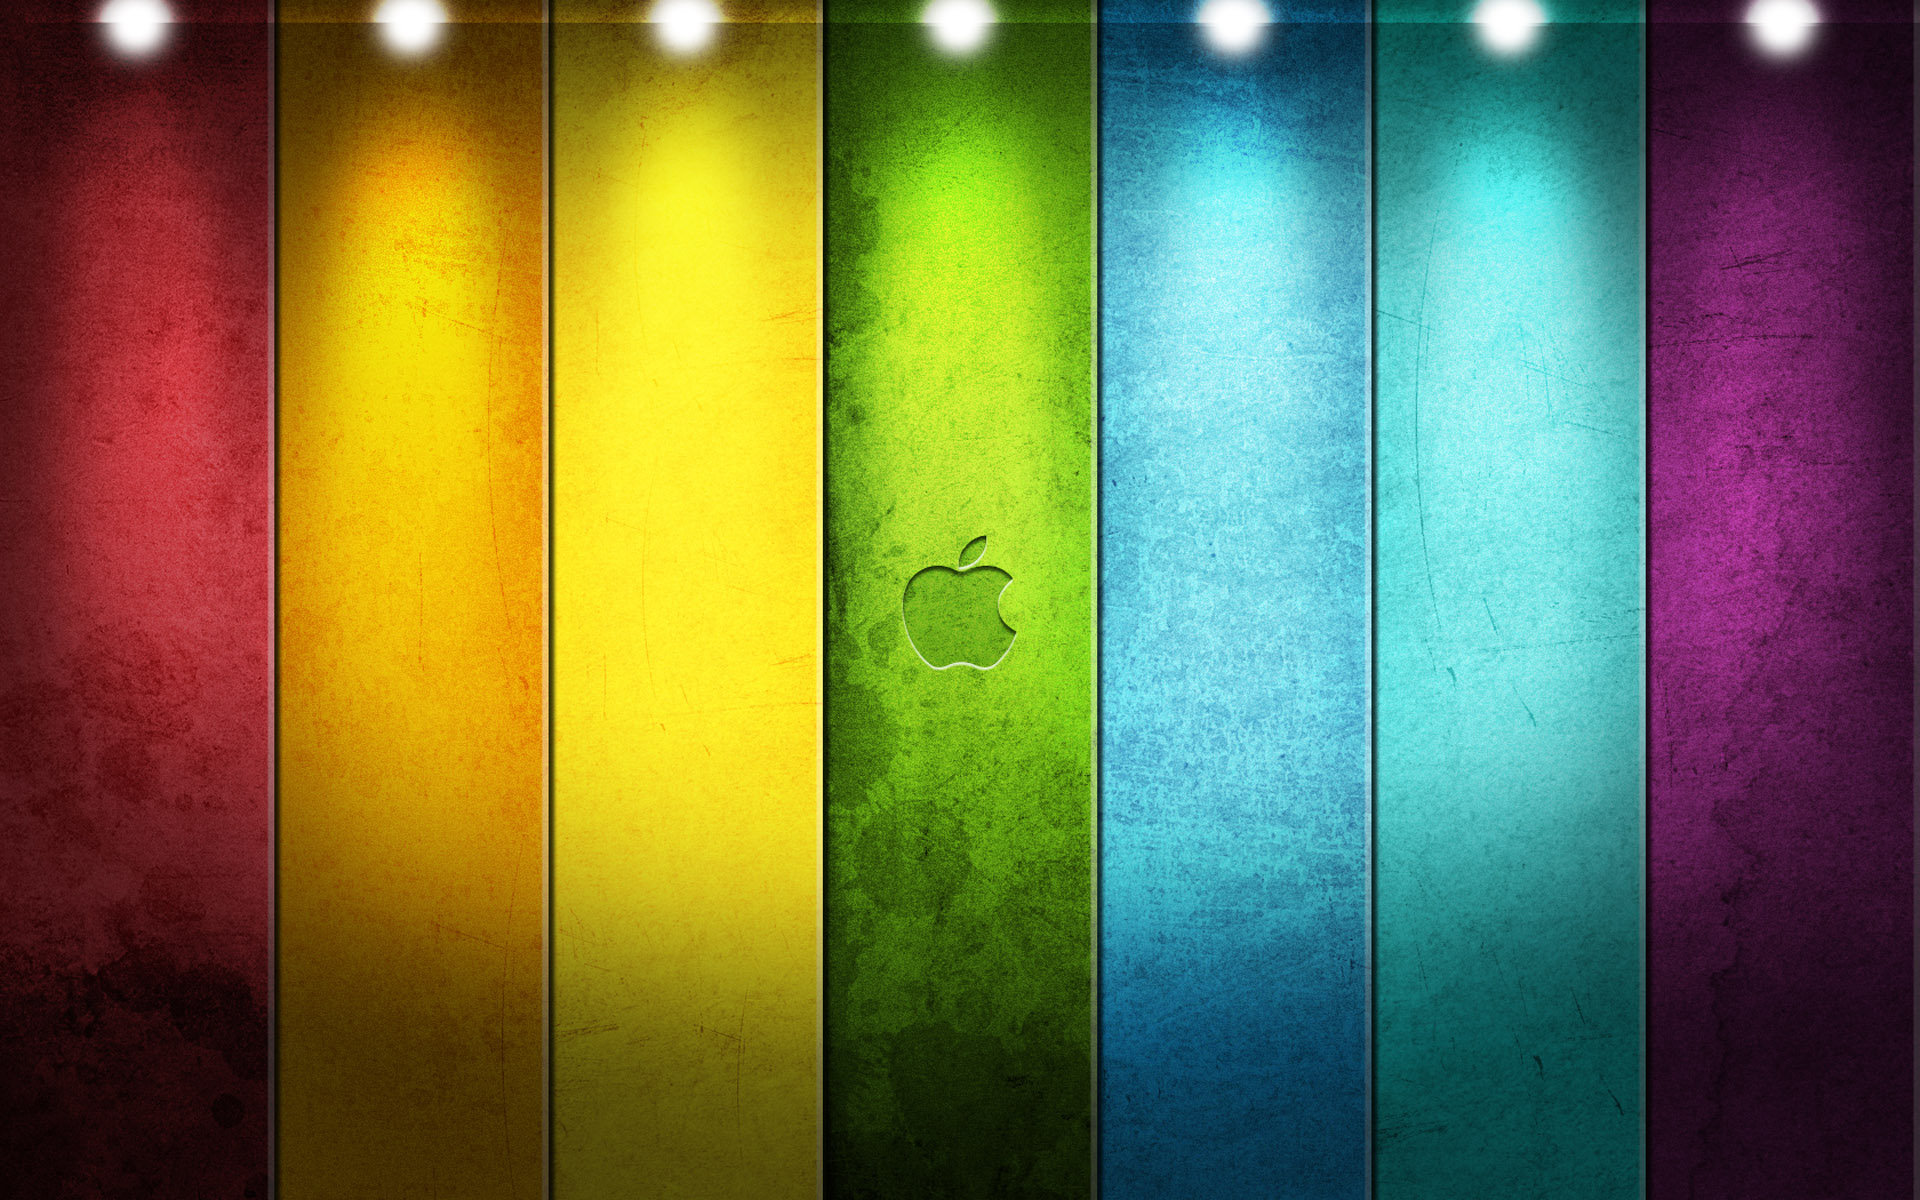 Apple wallpaper high definition 21124